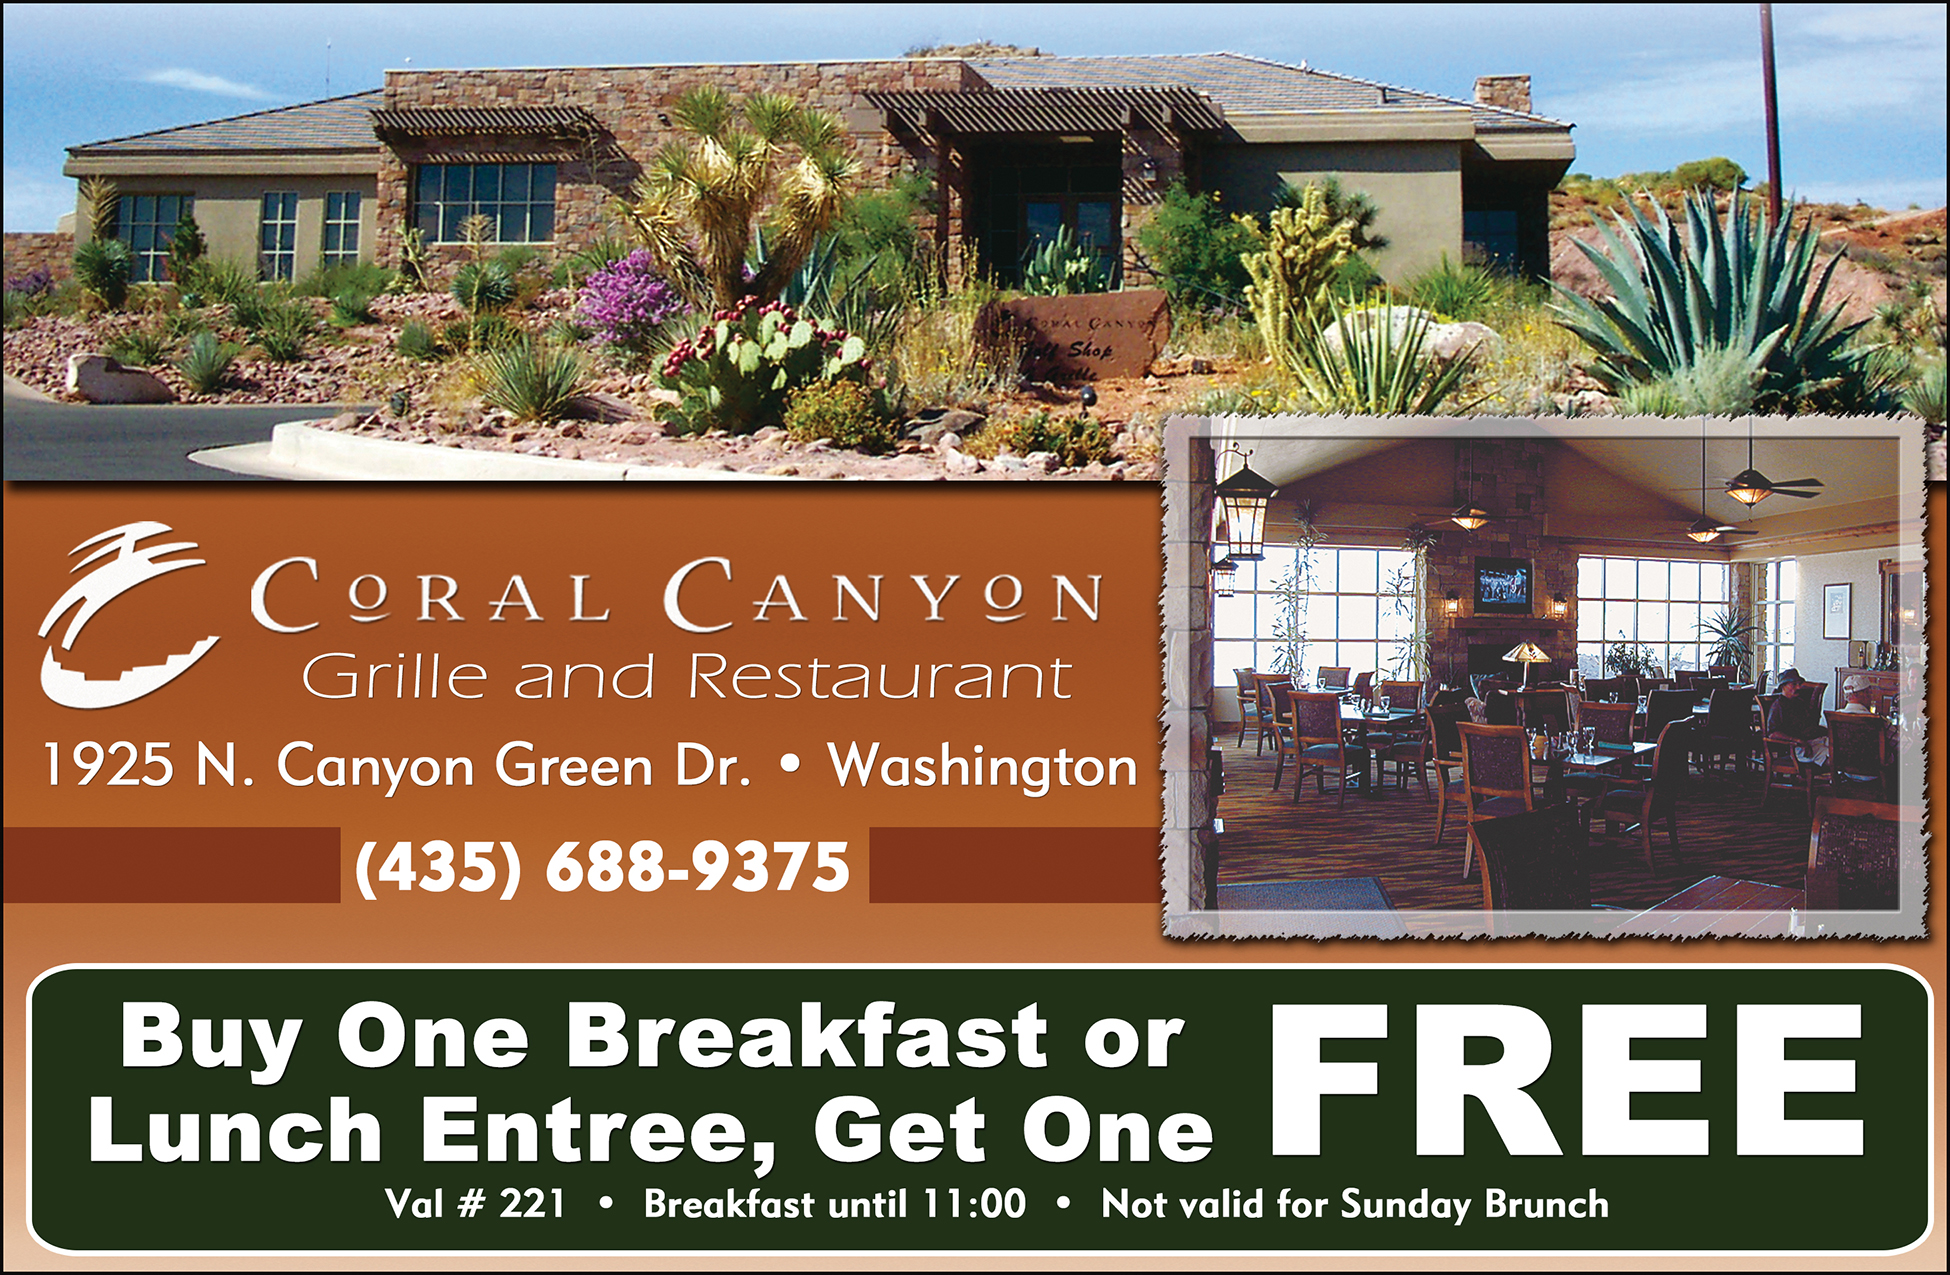 Coral canyon Grille and Restaurant